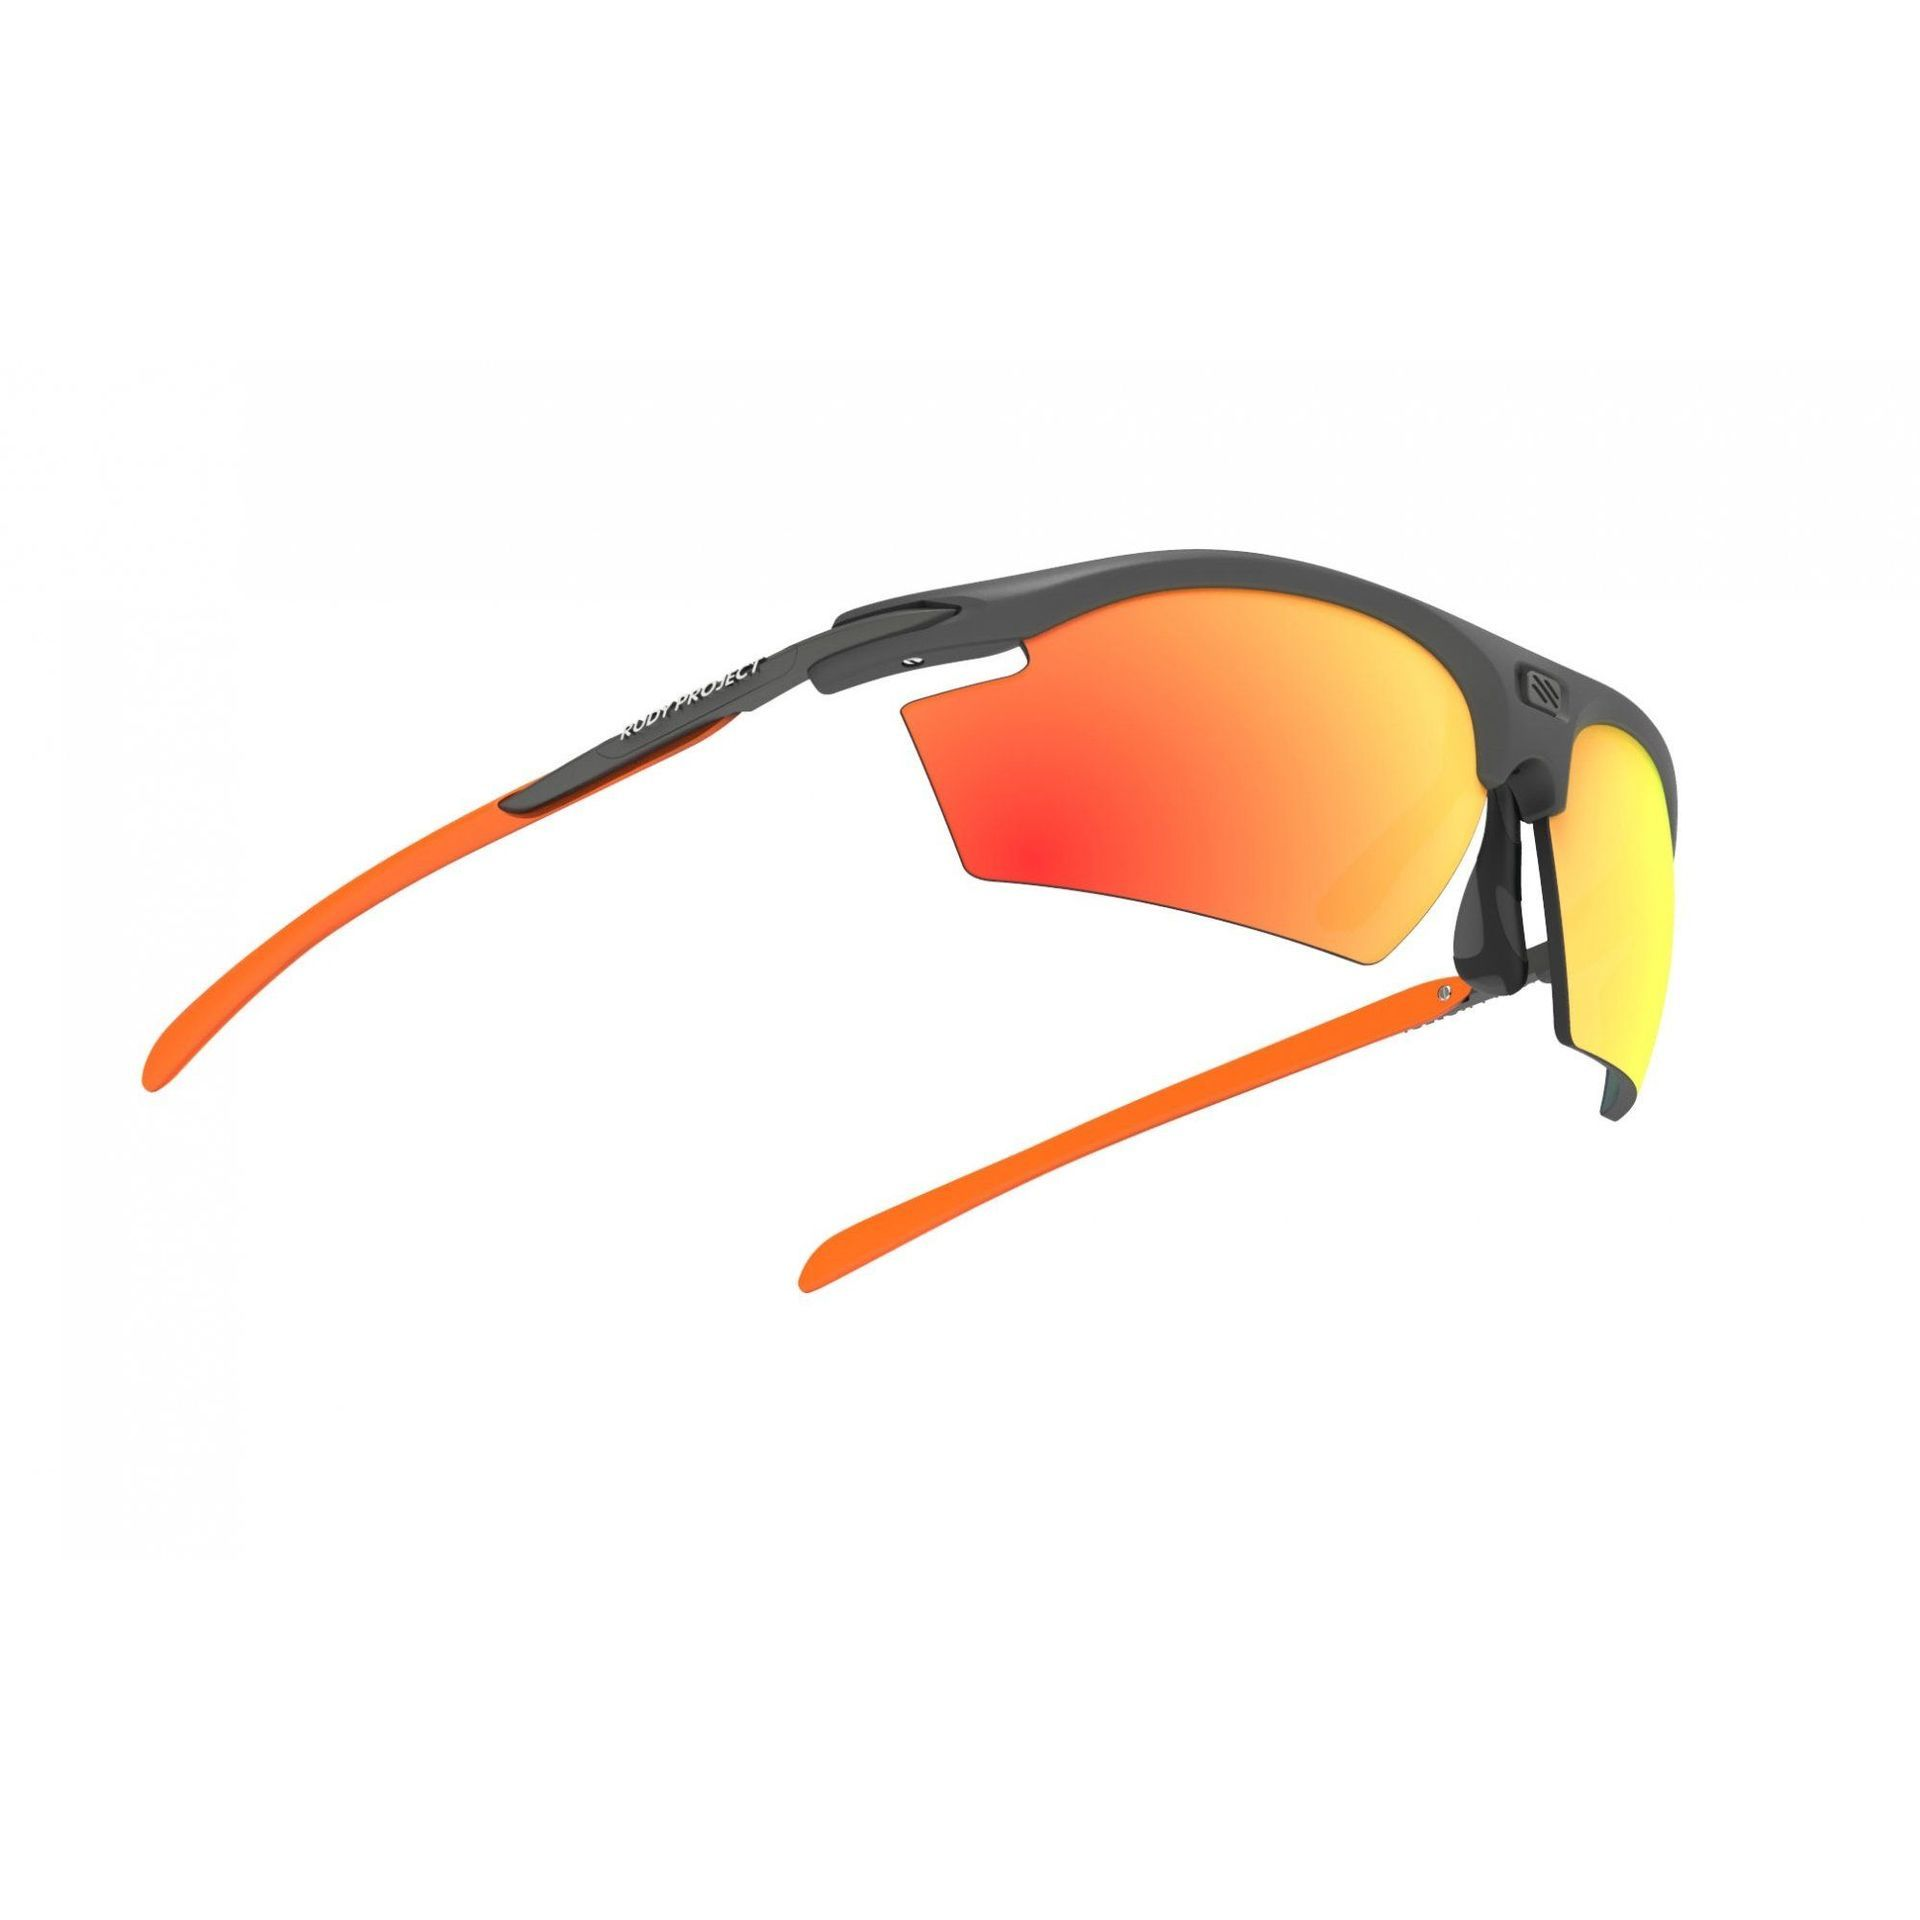 OKULARY RUDY PROJECT RYDON GRAPHITE|ORANGE + ML ORANGE SP534098 3